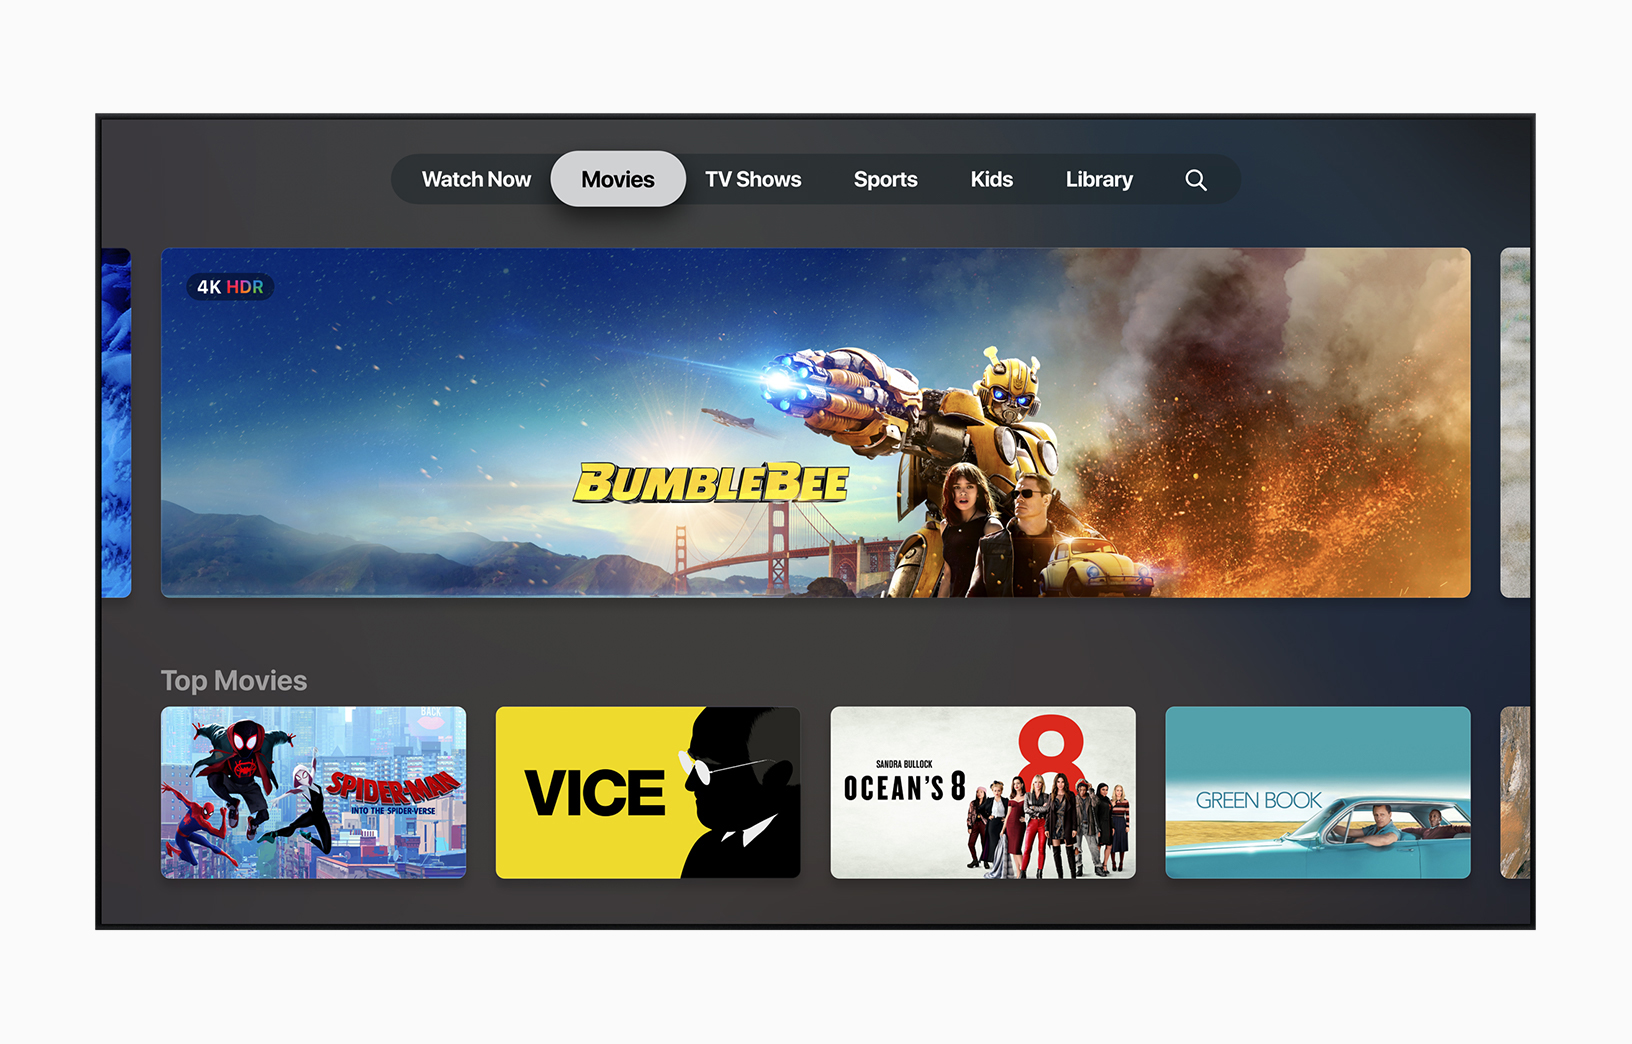 Goin Nuts With The Insert Tool Roblox Movies Https Techcrunch Com 2019 03 25 Oprah Offers More Details About Her Partnership With Apple 2019 03 25t19 16 15z Https Techcrunch Com Wp Content Uploads 2019 03 20190325184621 746275 Jpg Tim Cook Oprah Winfrey Tim Cook Oprah Winfrey